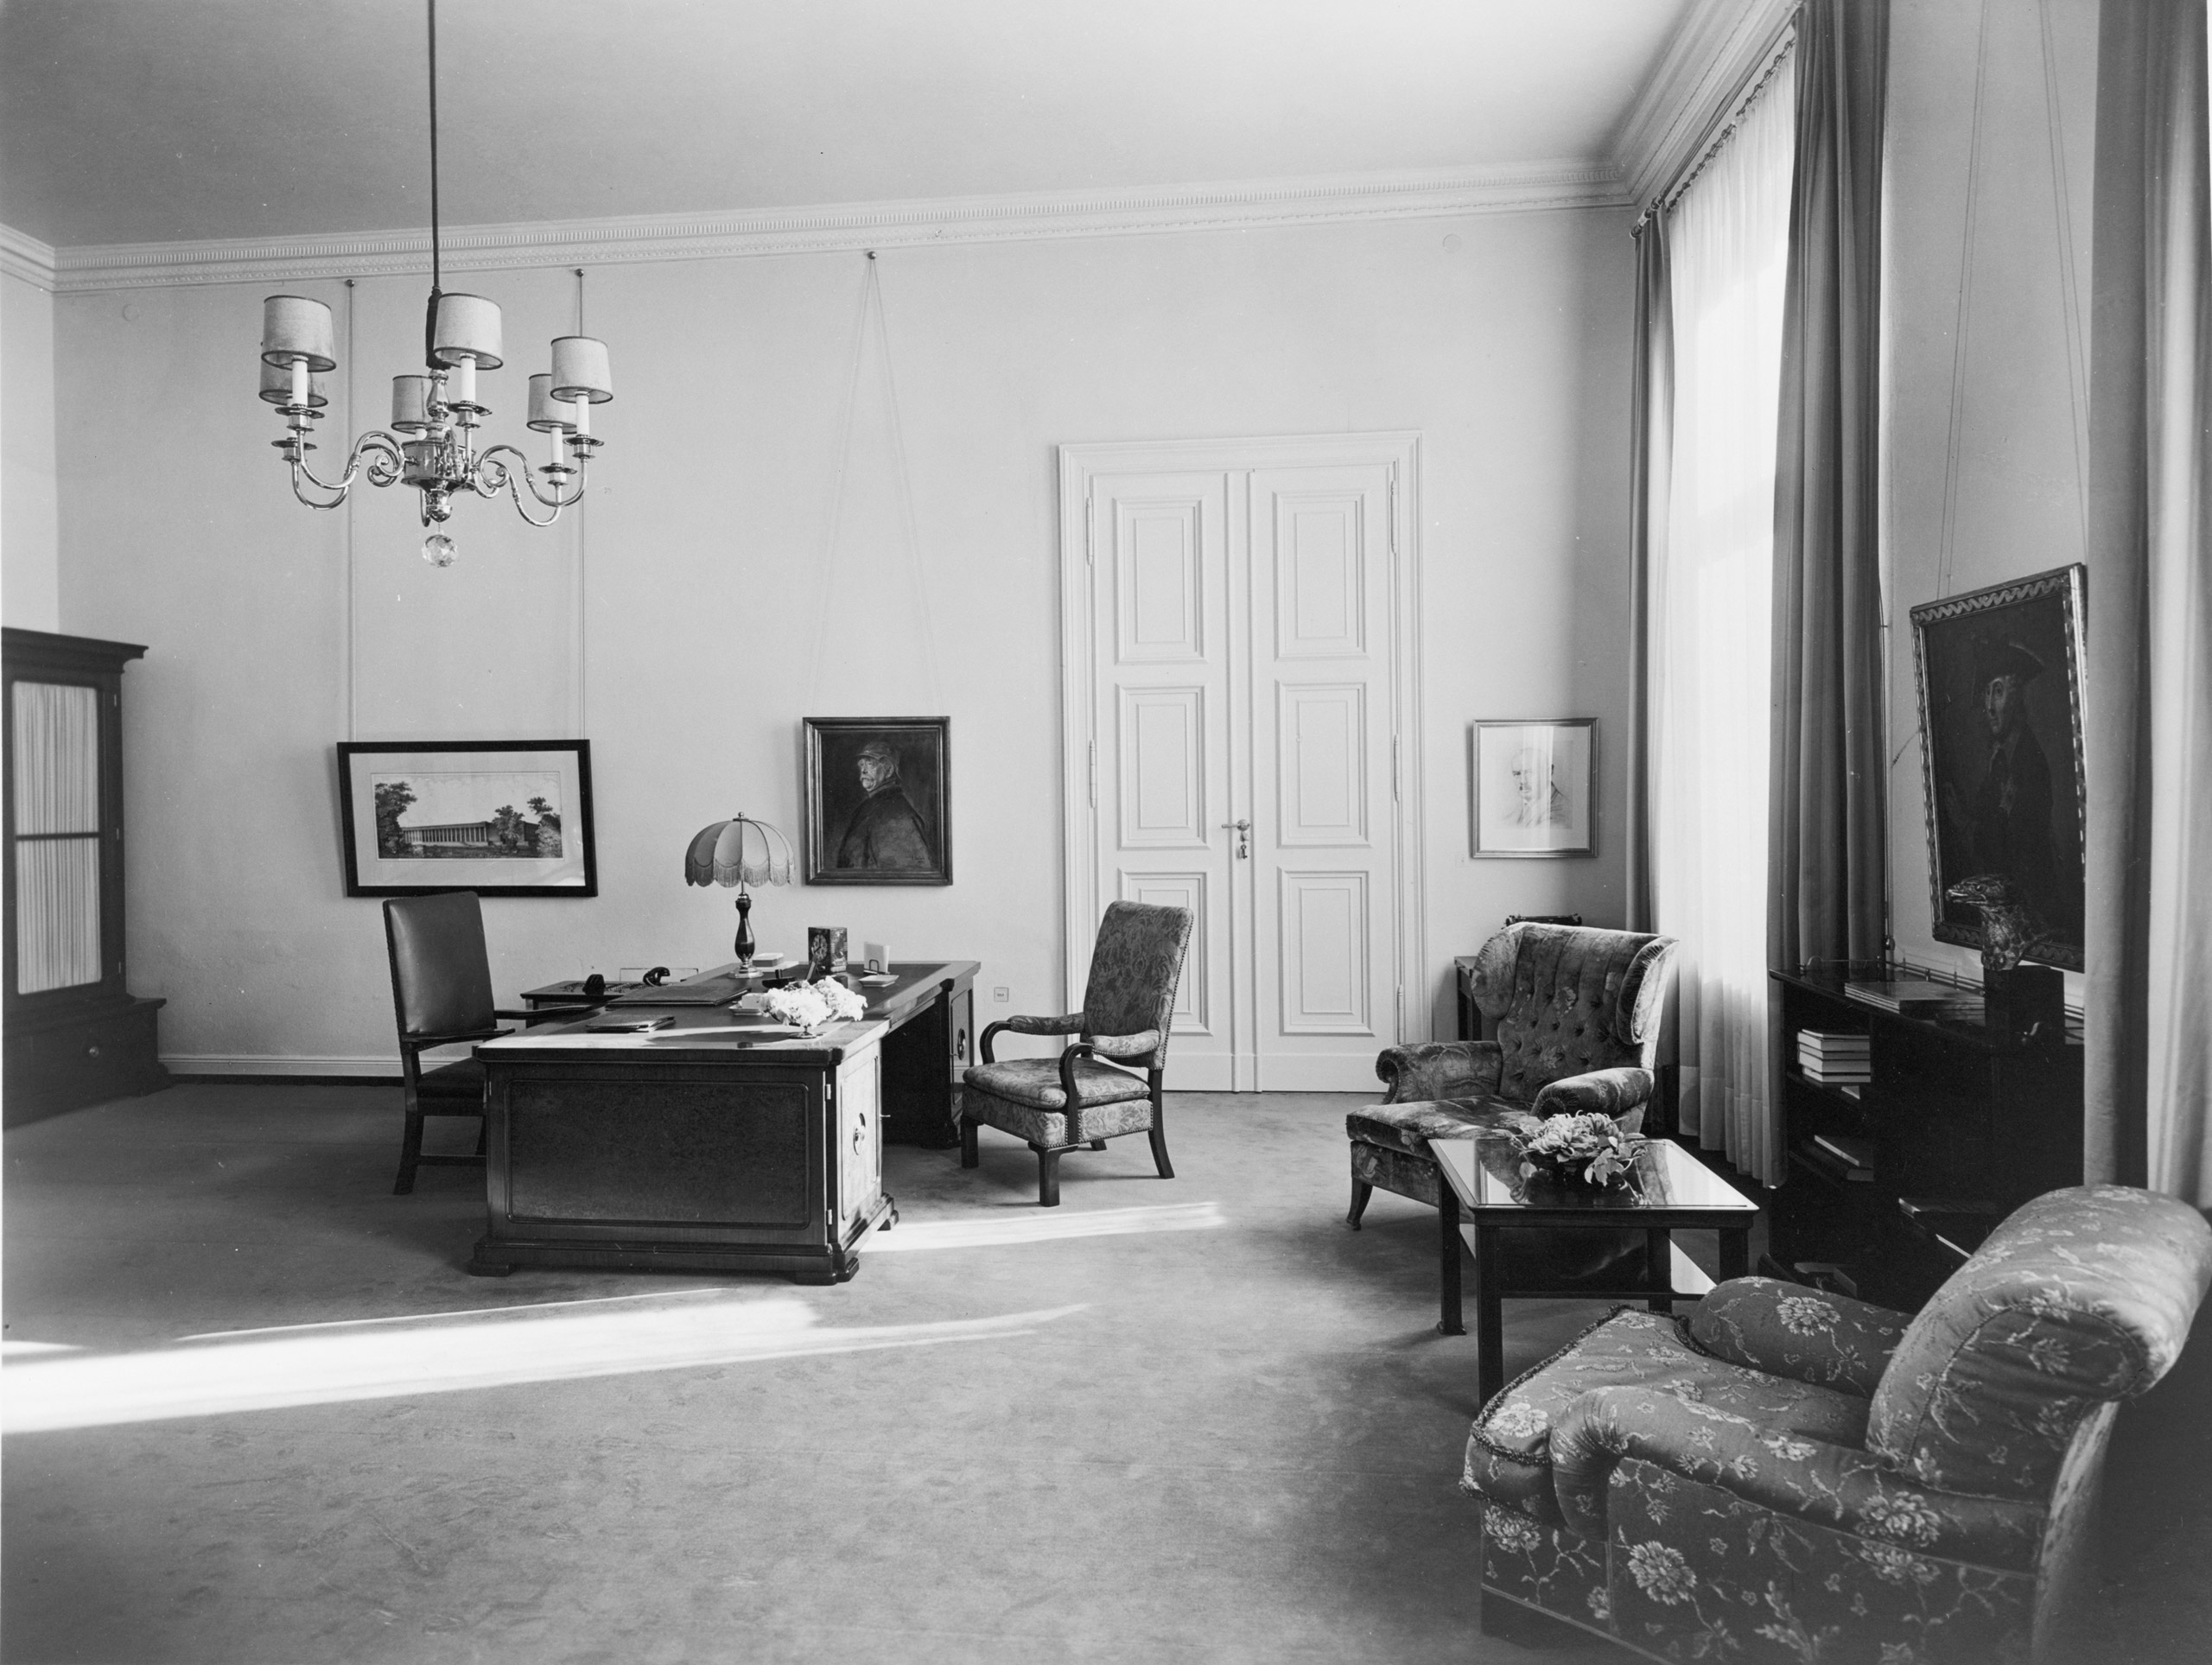 Heinrich Hoffmann, photograph of Hitler's private study on the second floor of the Old Chancellery in Berlin after the 1934 renovation by the Atelier Troost.